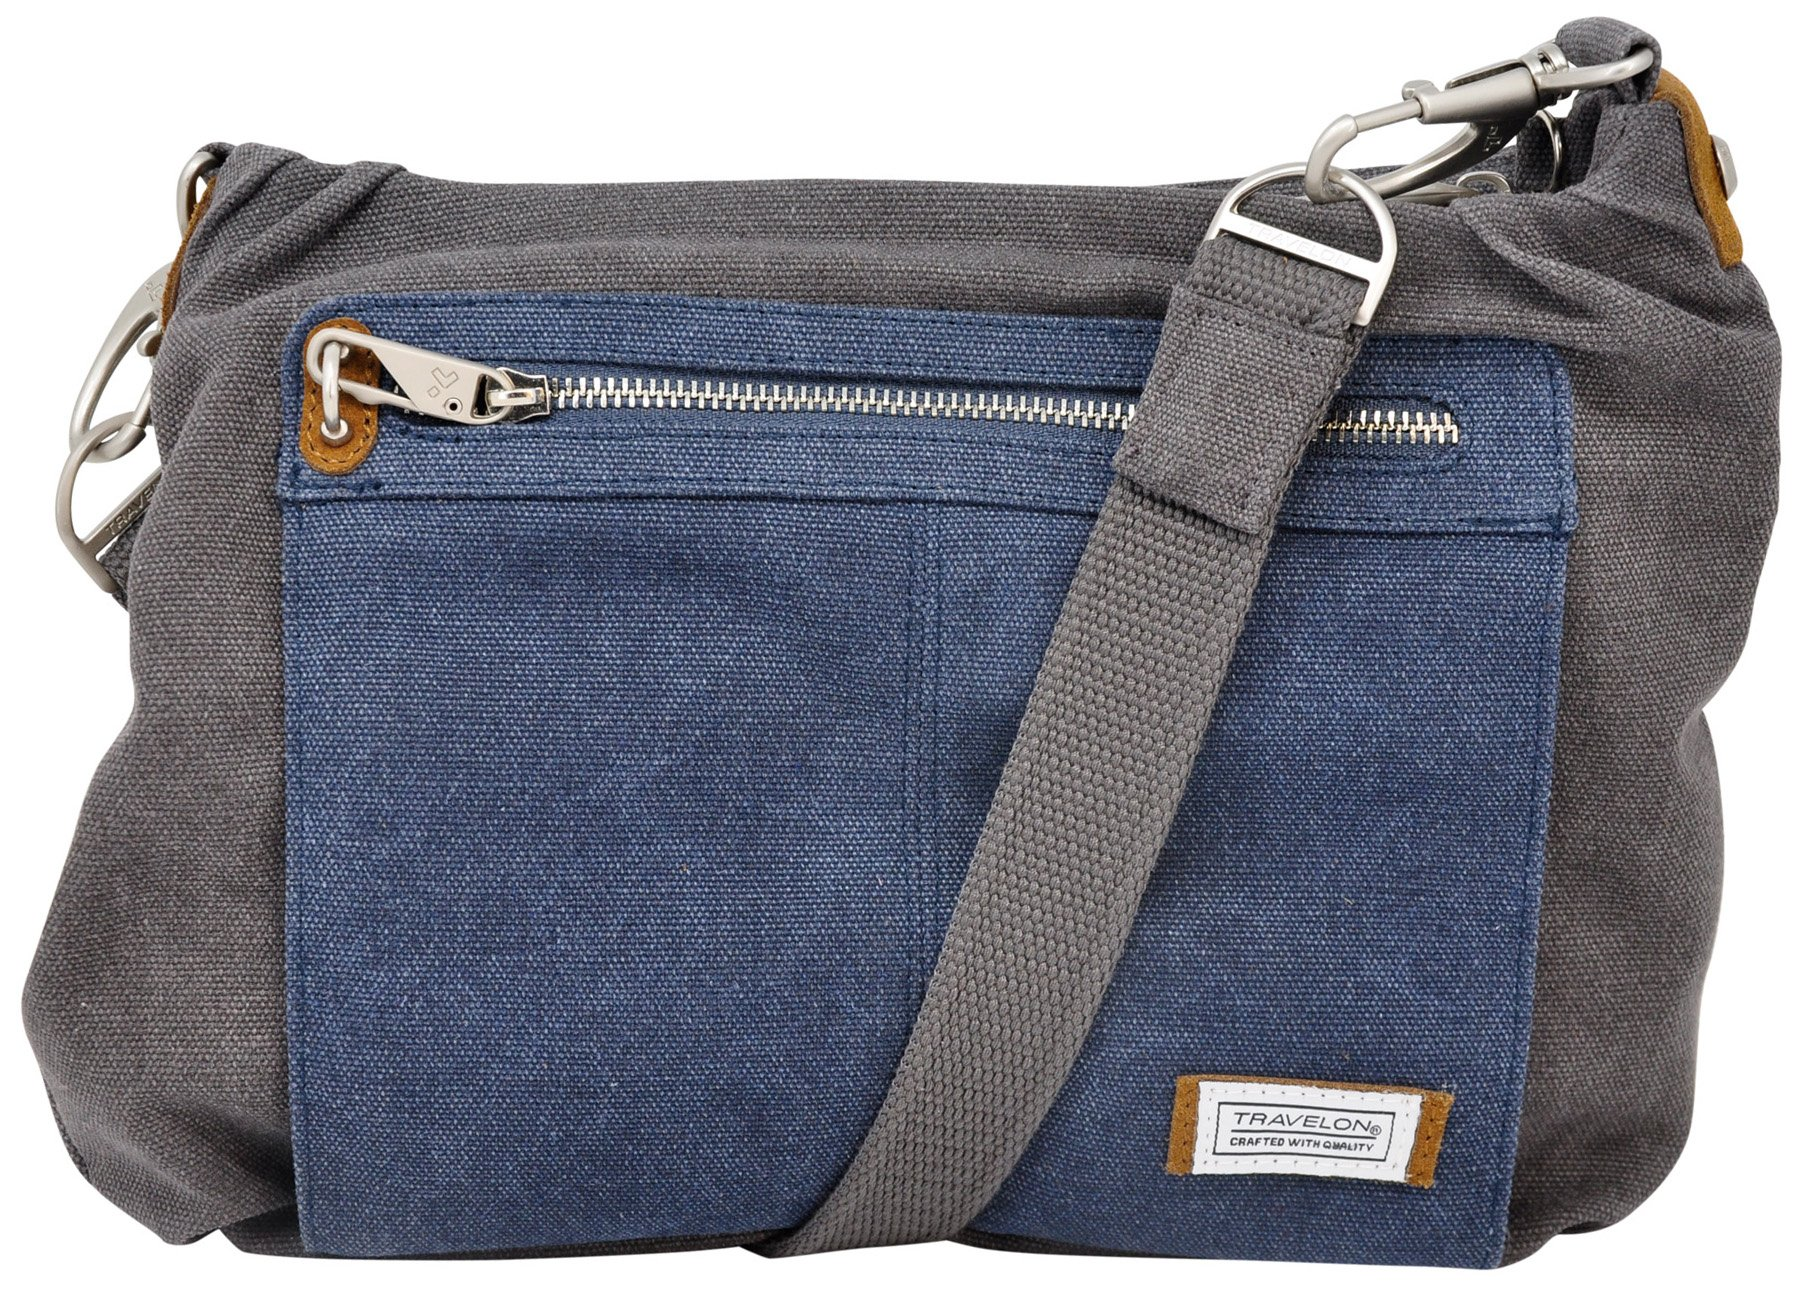 Travelon Anti-theft Heritage Hobo Bag (One Size, Pewter/Indigo)